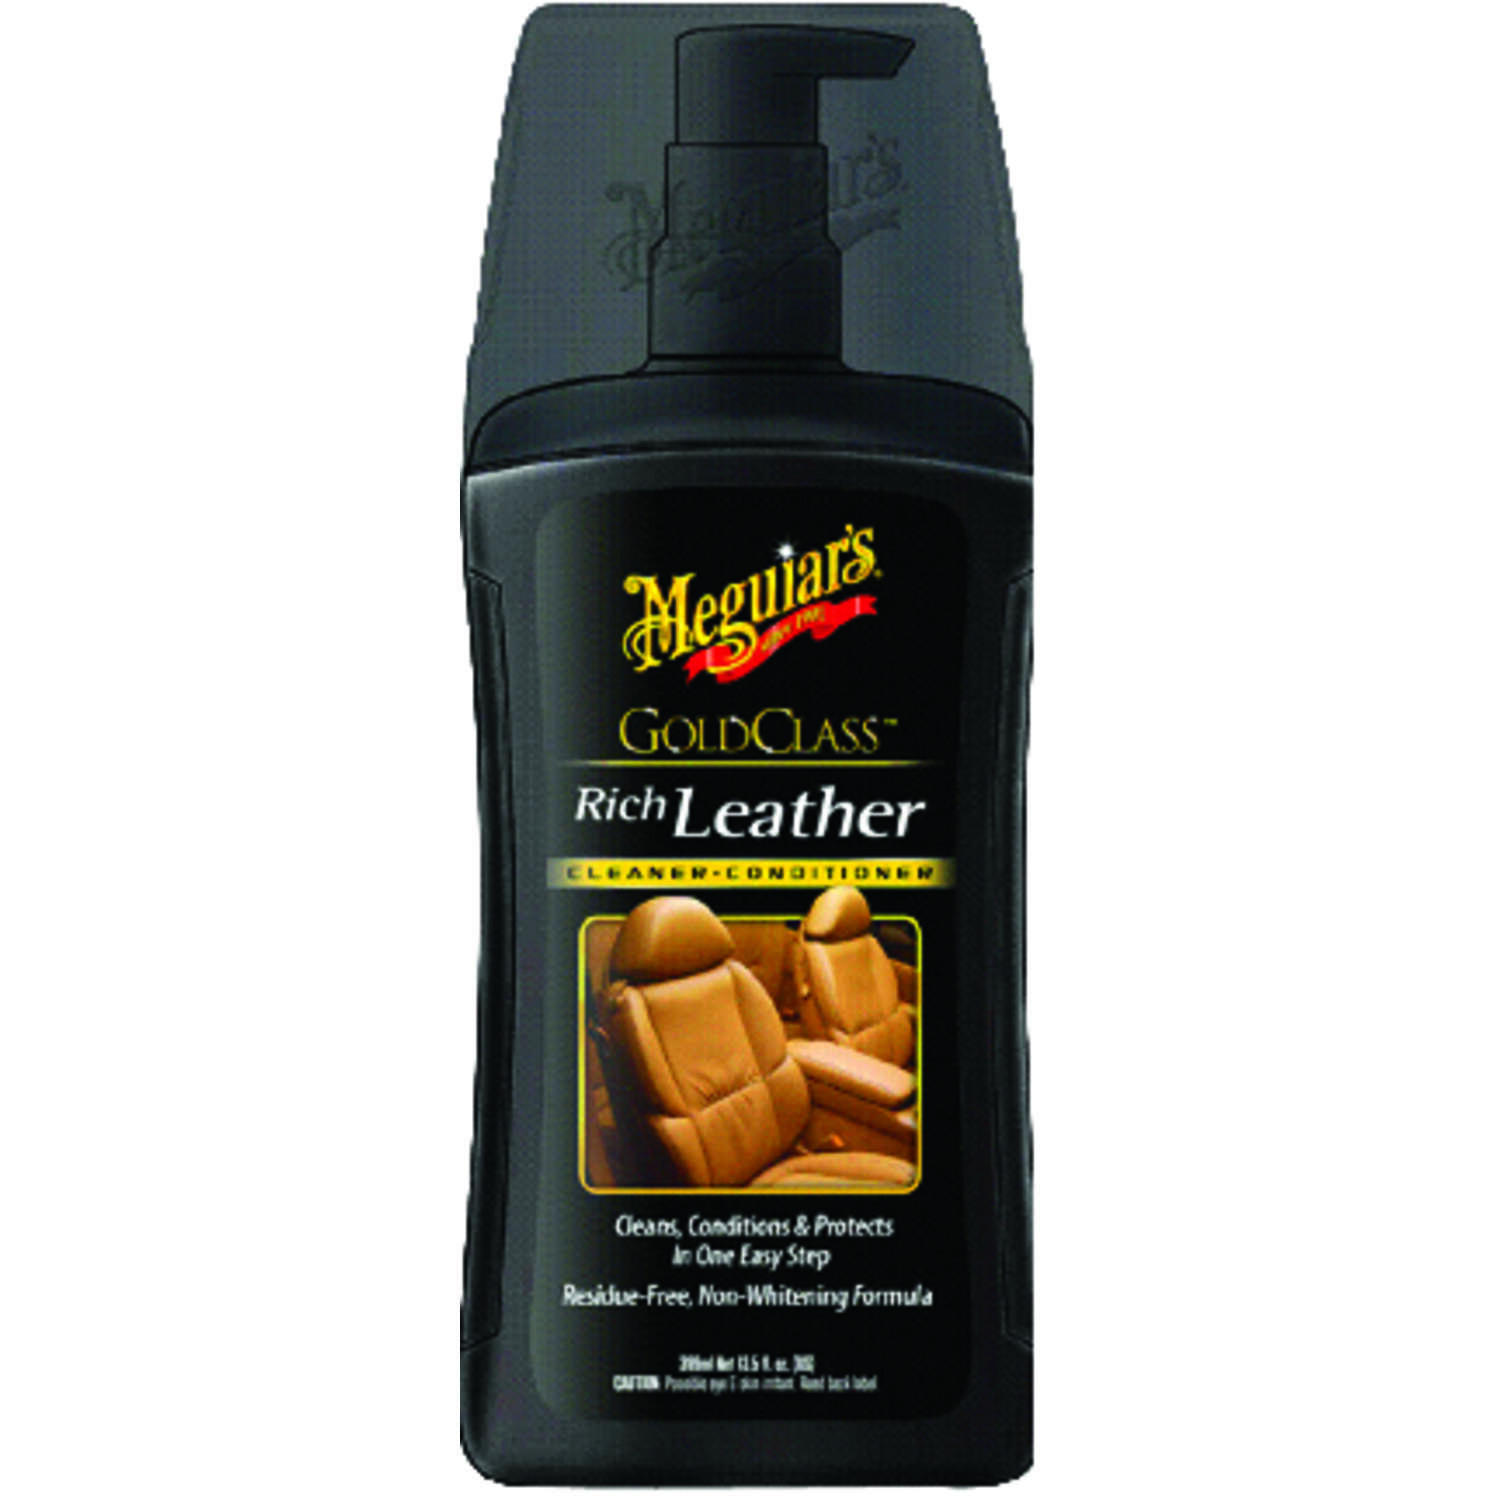 Meguiar's  Gold Glass  Leather  Cleaner and Conditioner  13.5 oz. Bottle